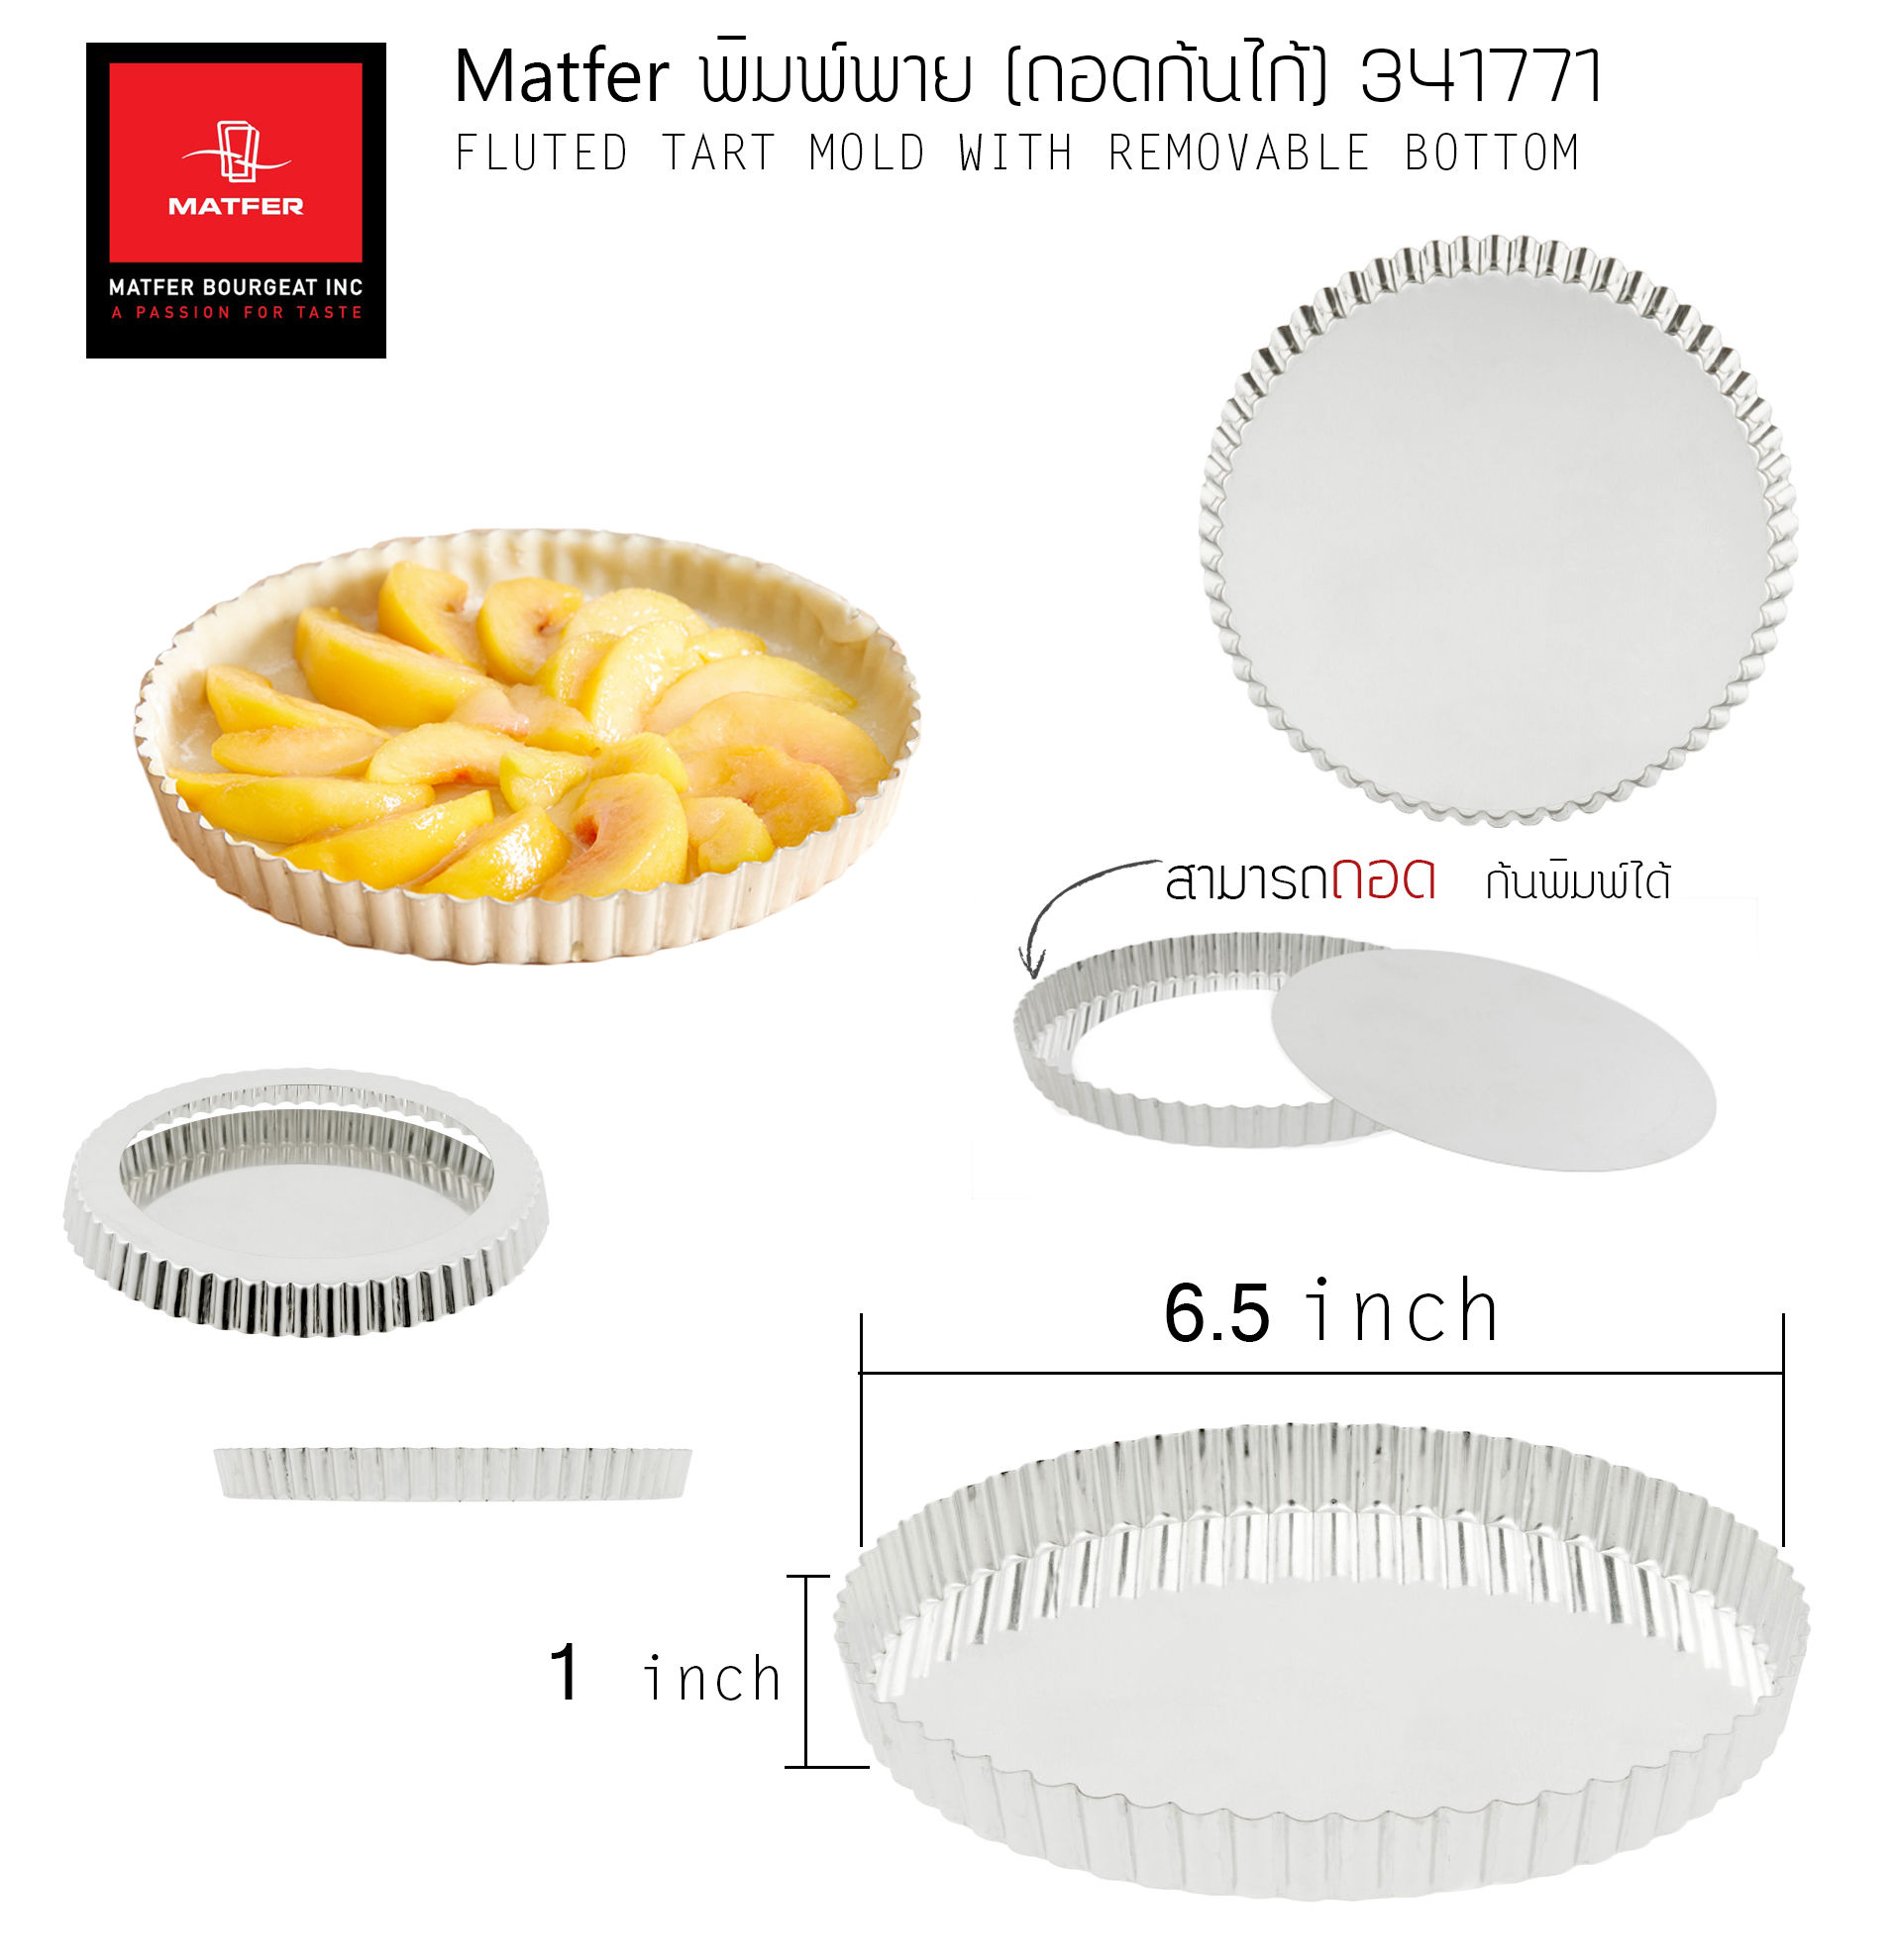 Matfer FLUTED TART MOLD WITH REMOVABLE BOTTOM 160x25 mm (341771) พิมพ์พายก้นได้